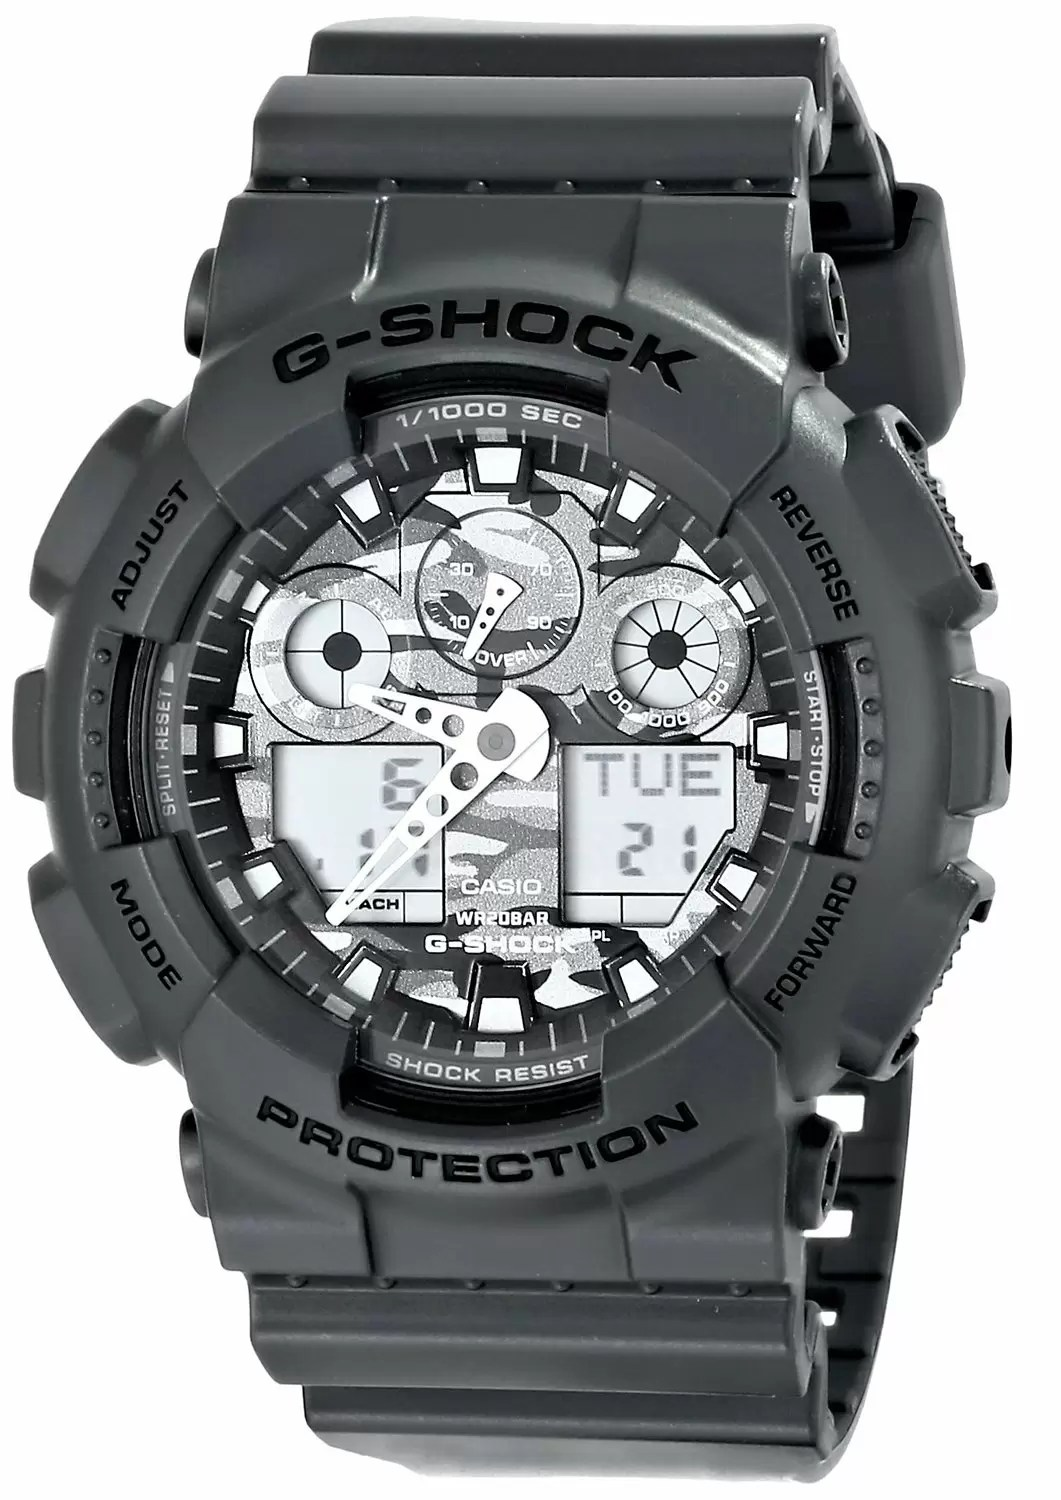 Casio G-Shock GA-100CF-8ADR Price in Pakistan, Specifications, Features, Reviews - Mega.Pk